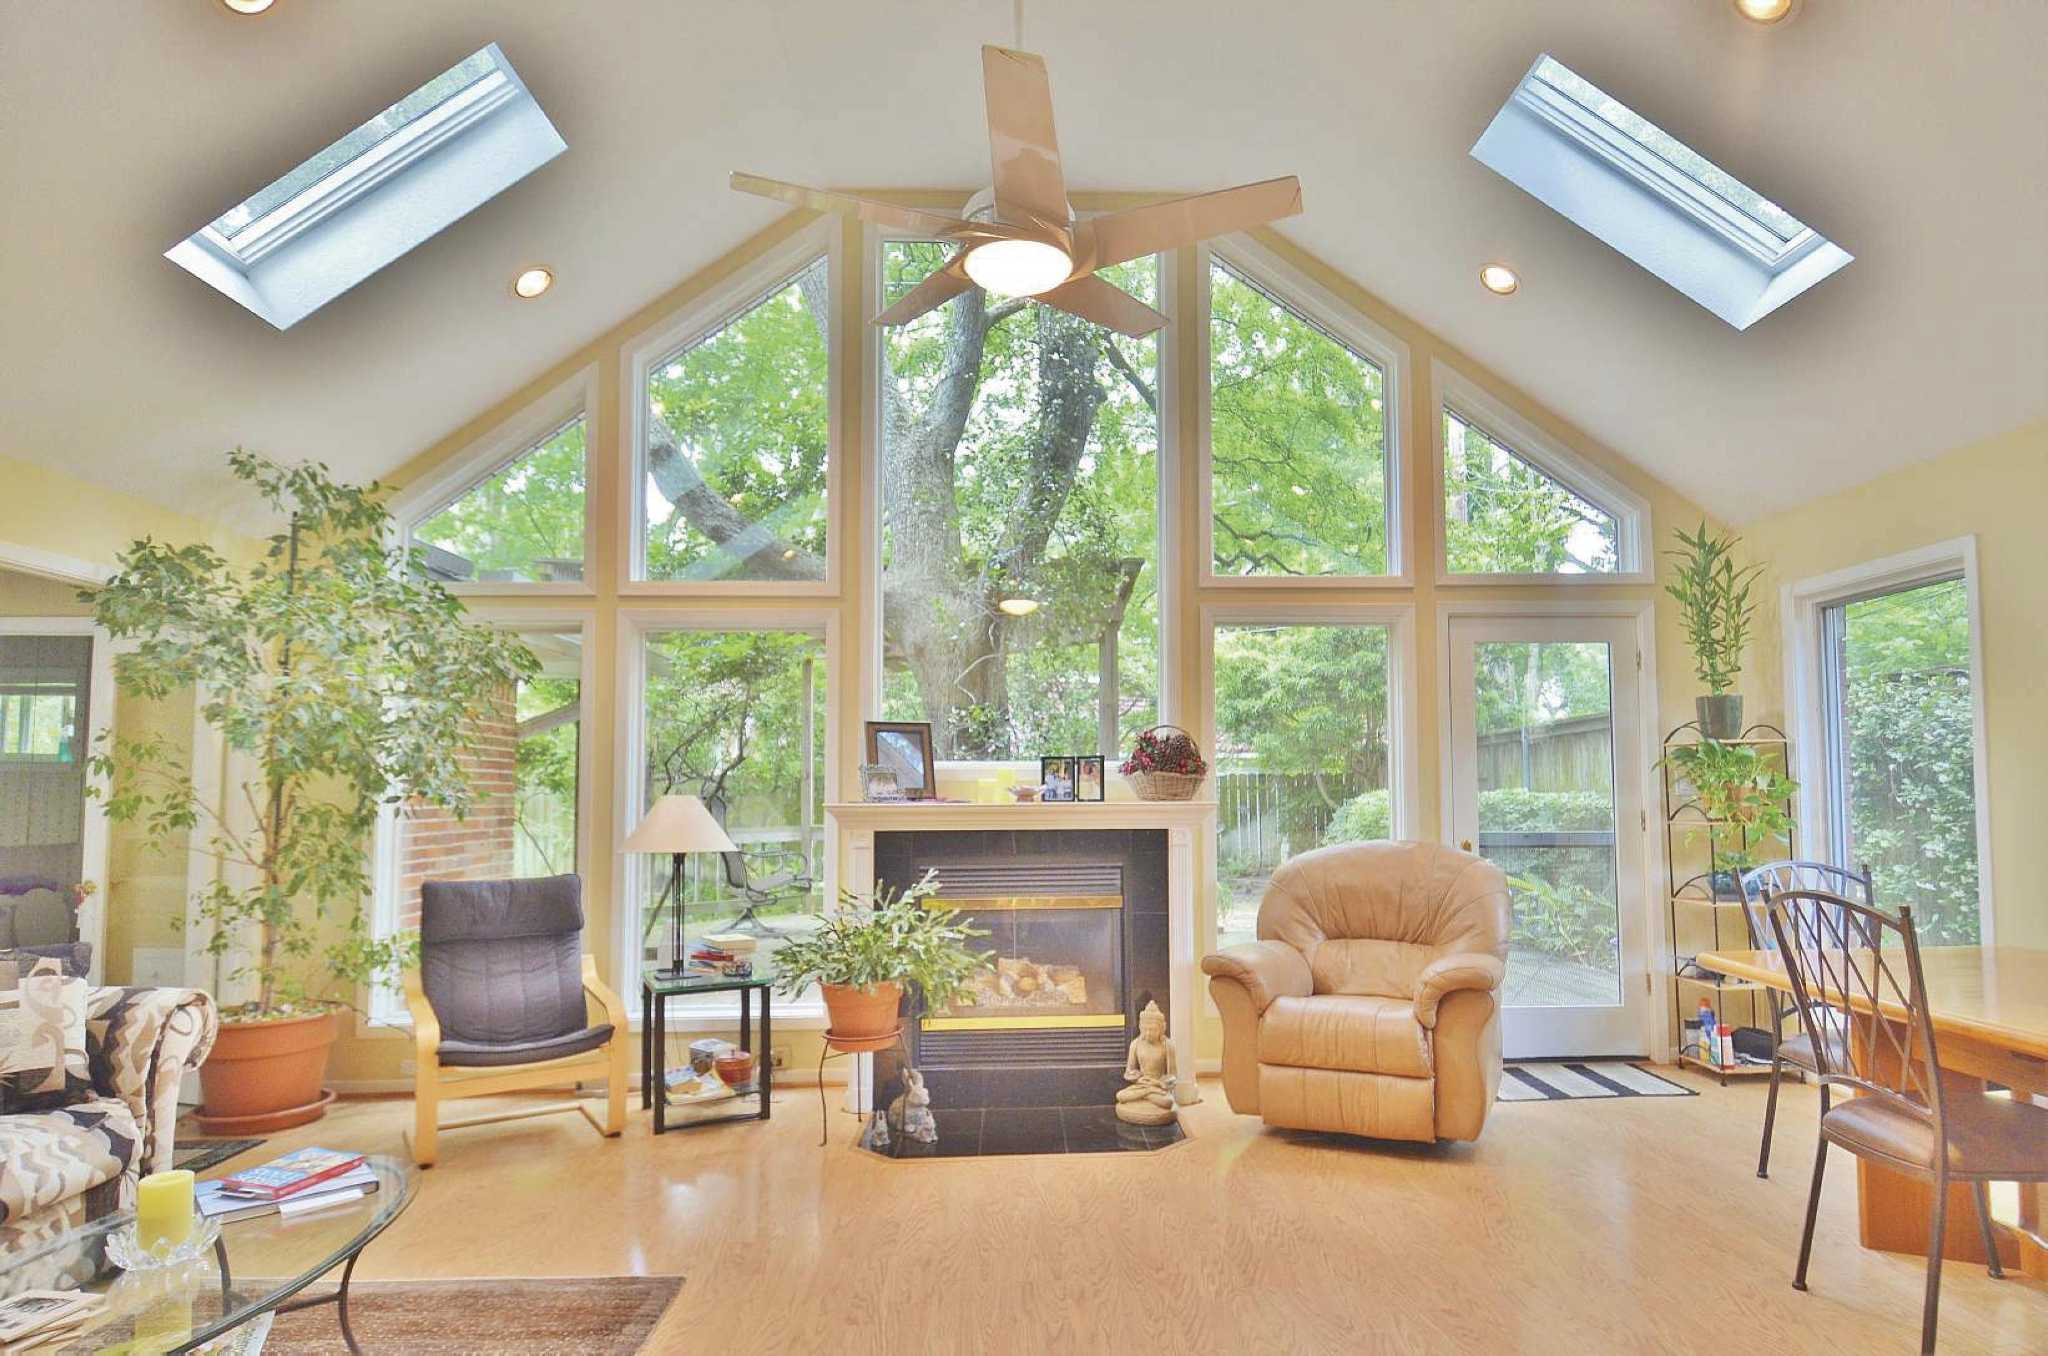 GHBA Remodelers Council: Get ready to get outside